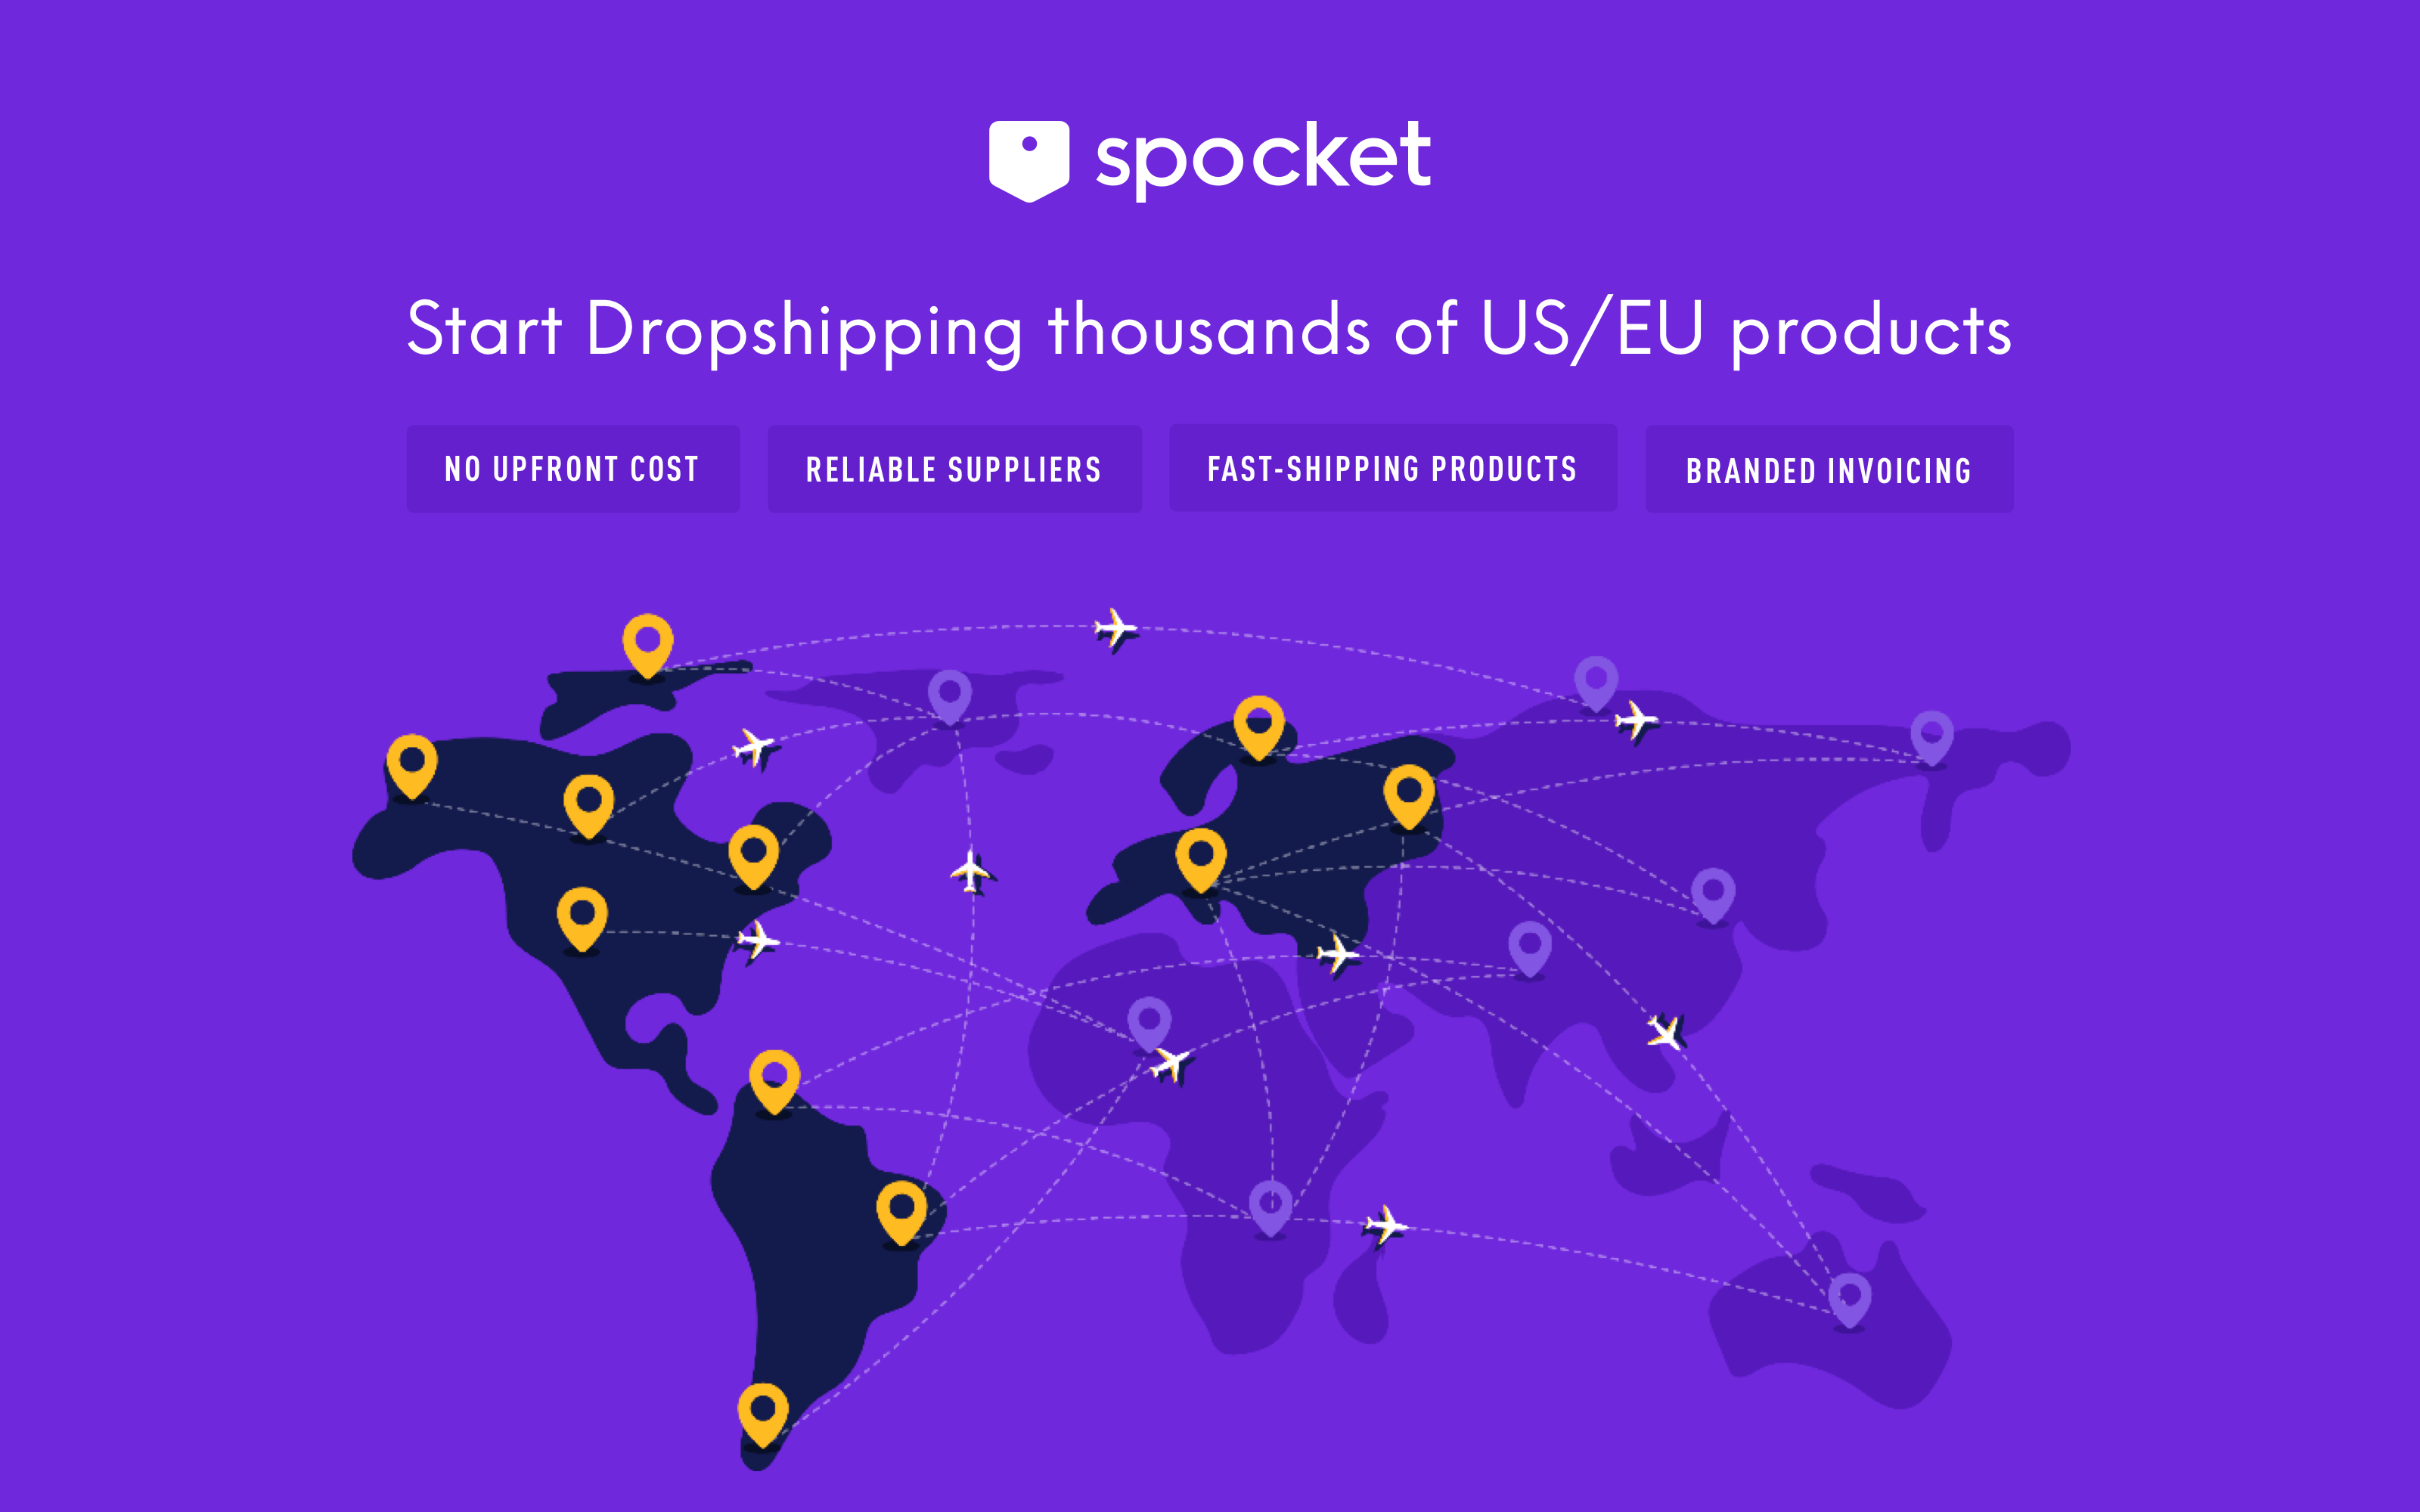 What dropshipping app do you recommend for a Shopify store